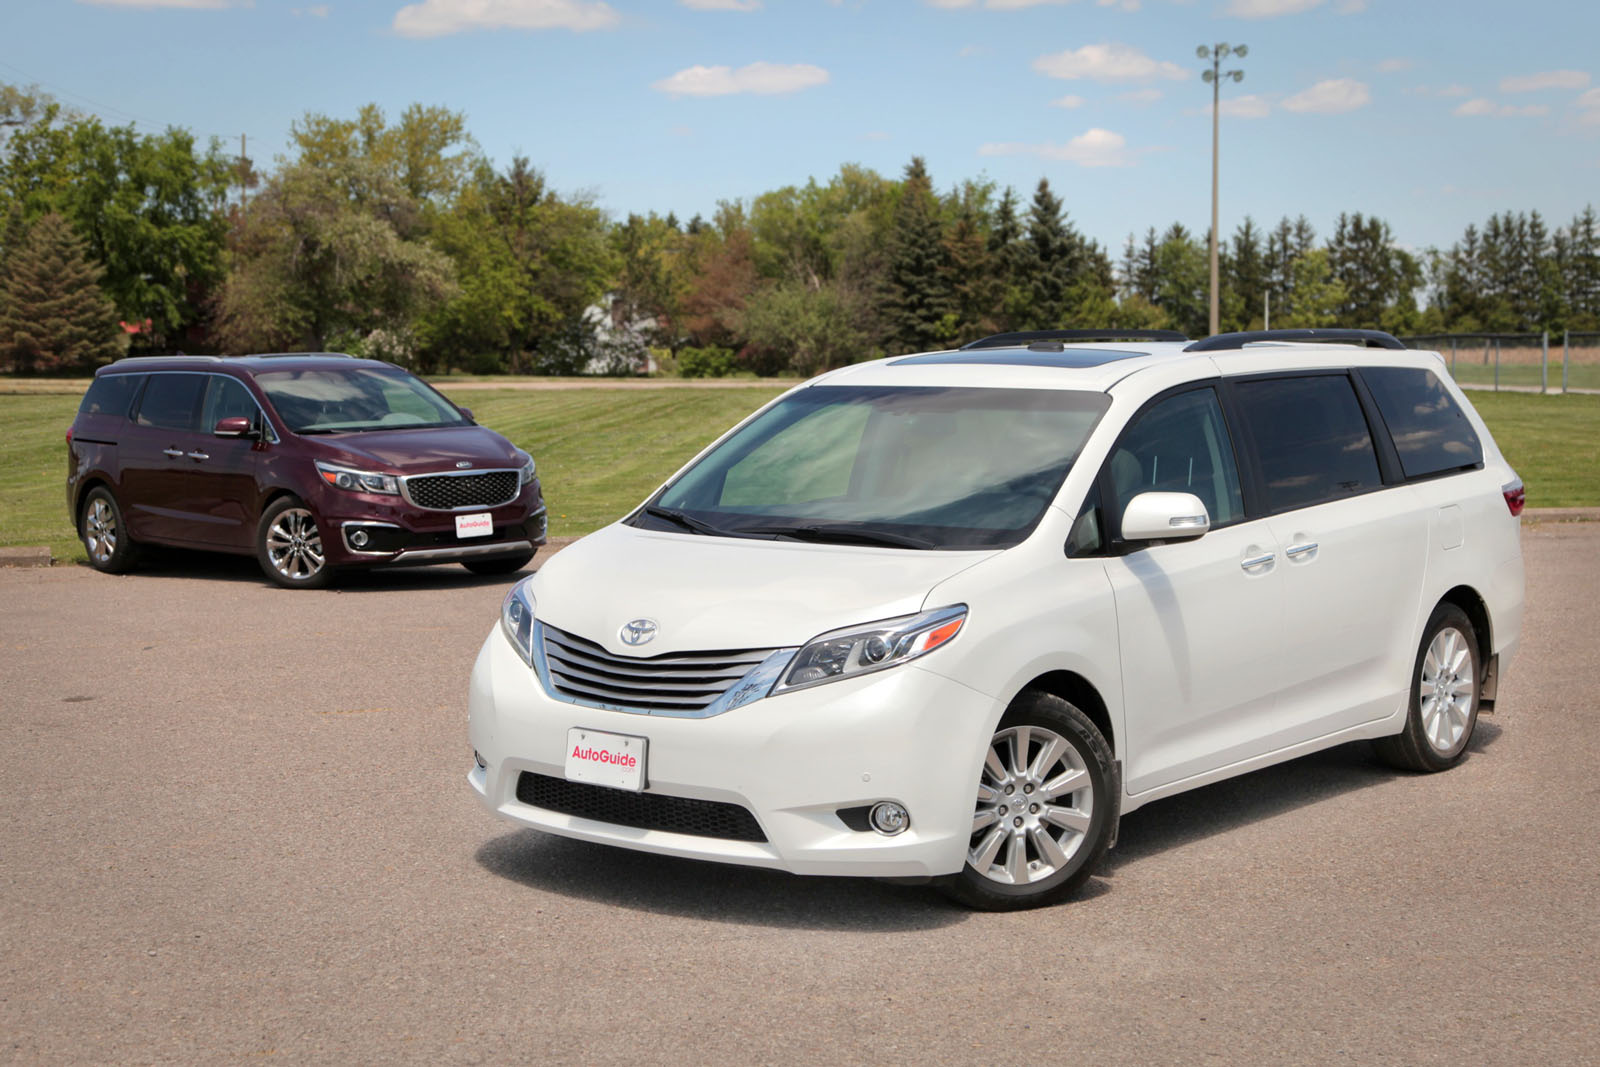 2015 kia sedona vs 2015 toyota sienna news. Black Bedroom Furniture Sets. Home Design Ideas